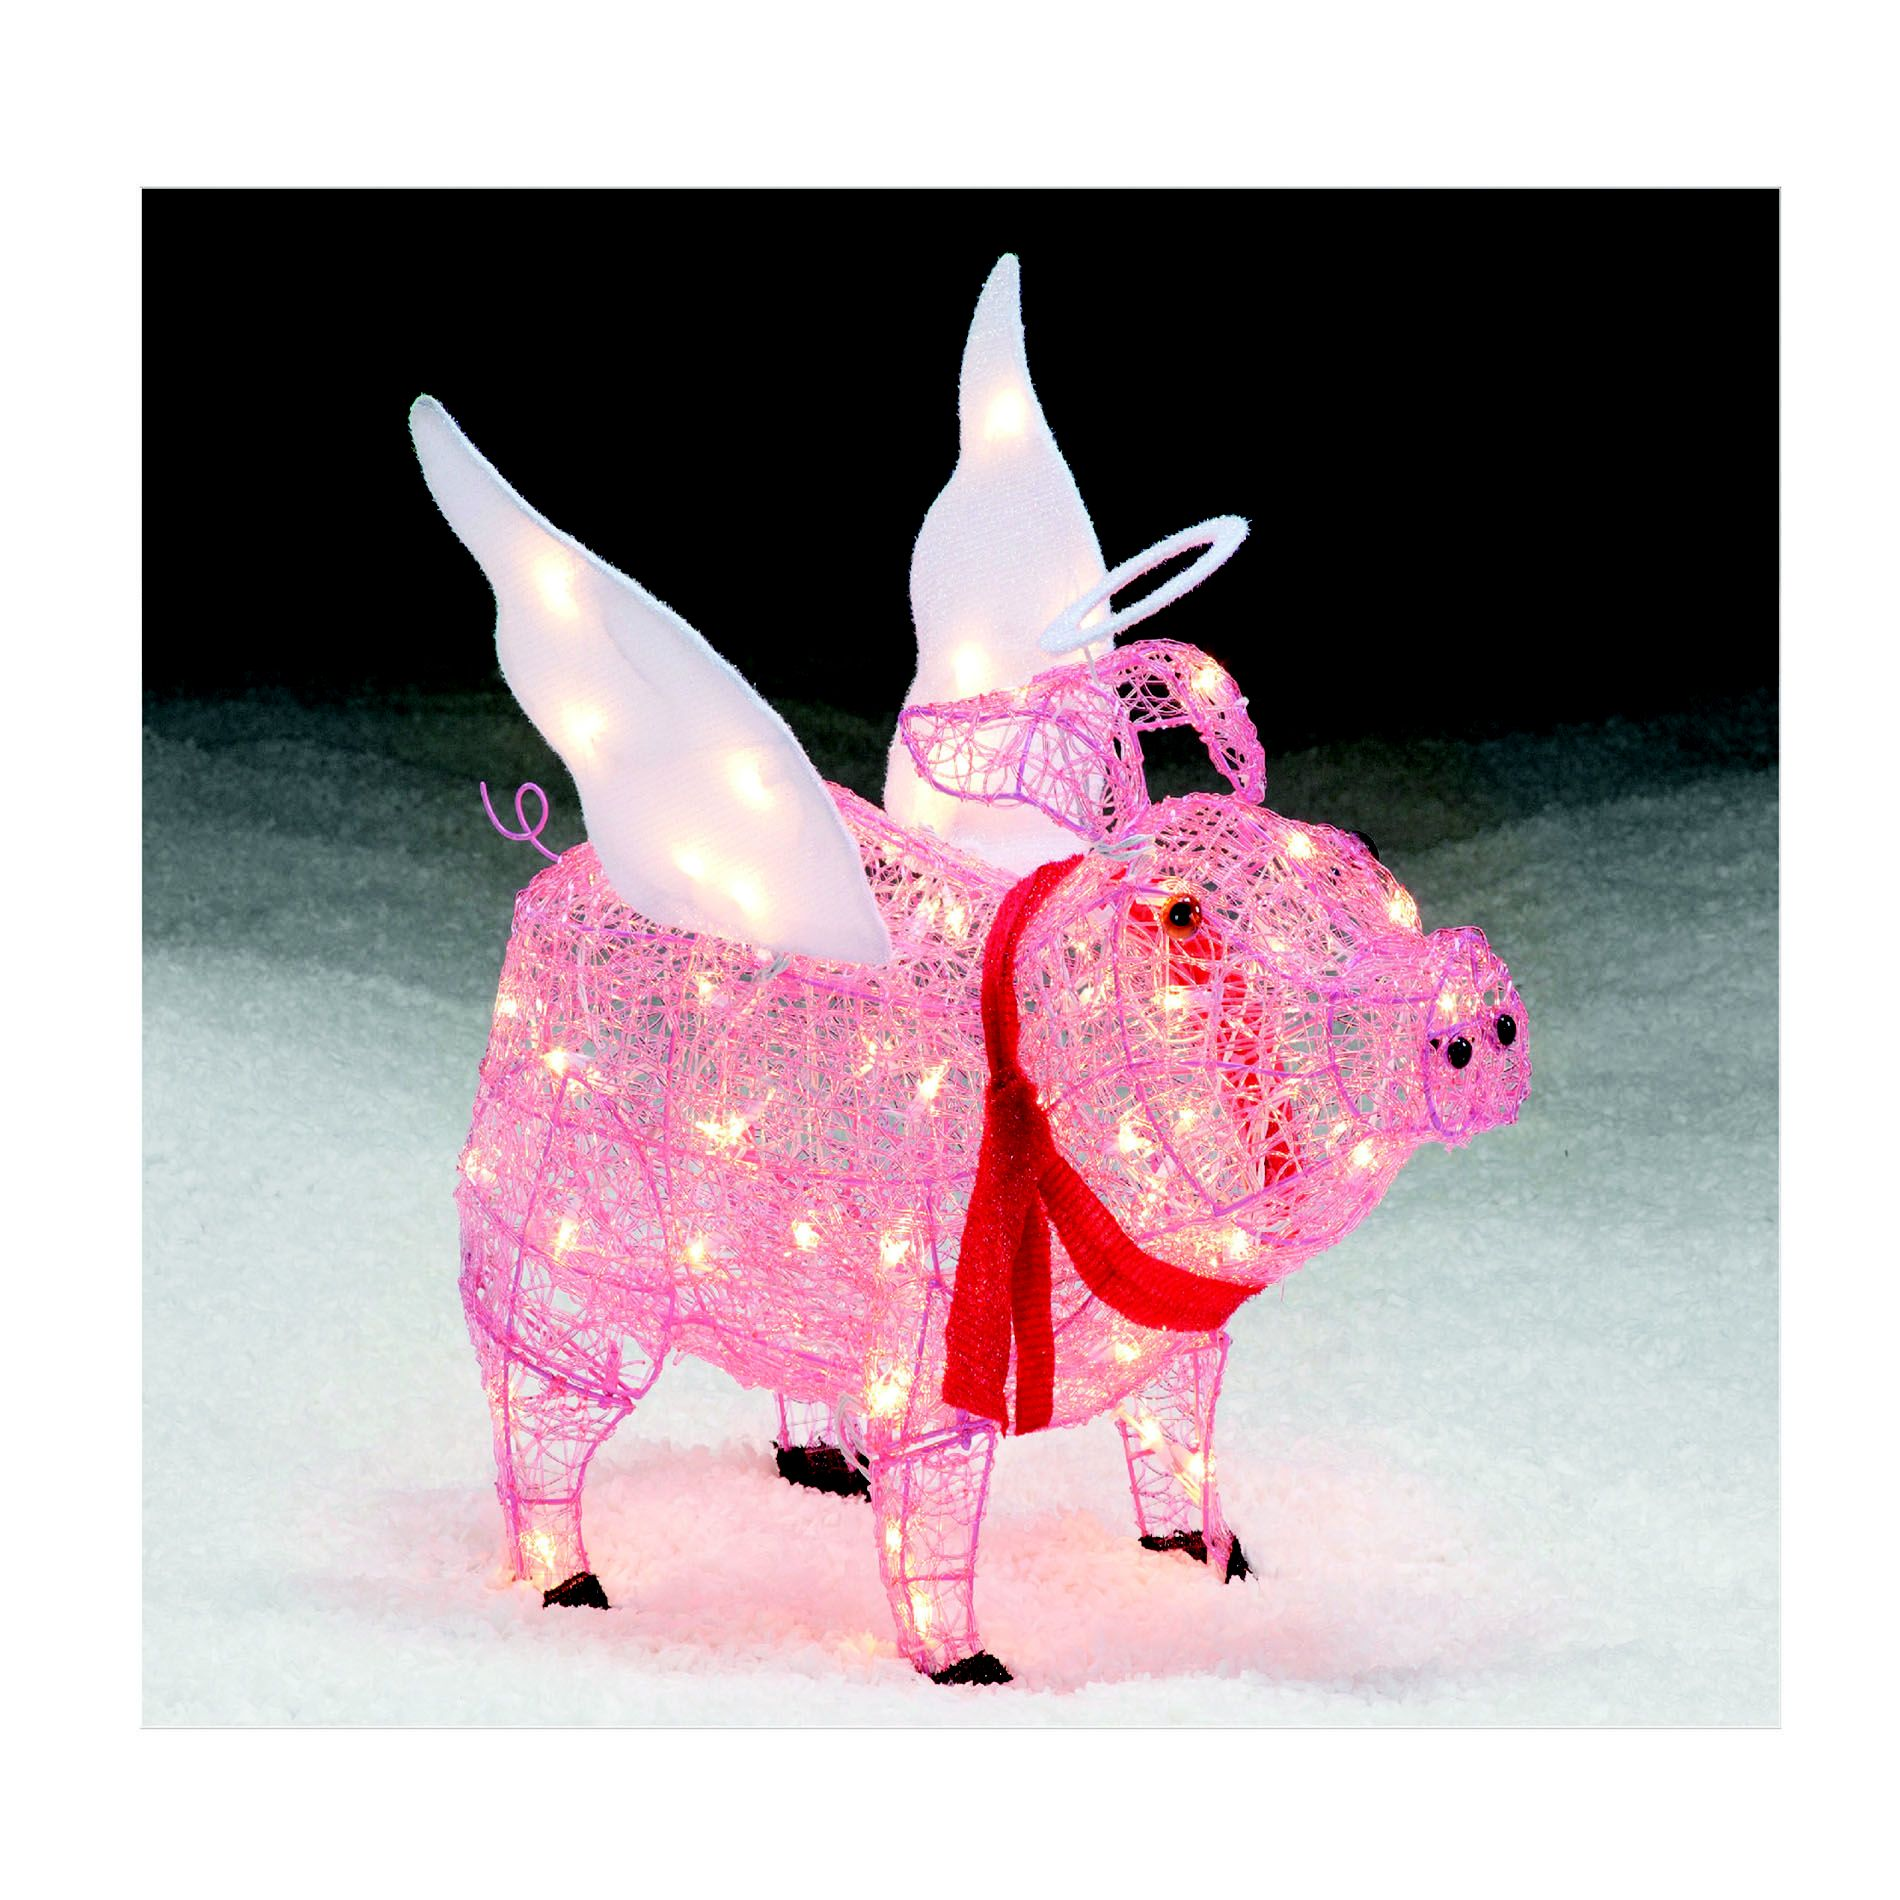 PIG ANGEL Lawn Figures Spread Smiles This Christmas With